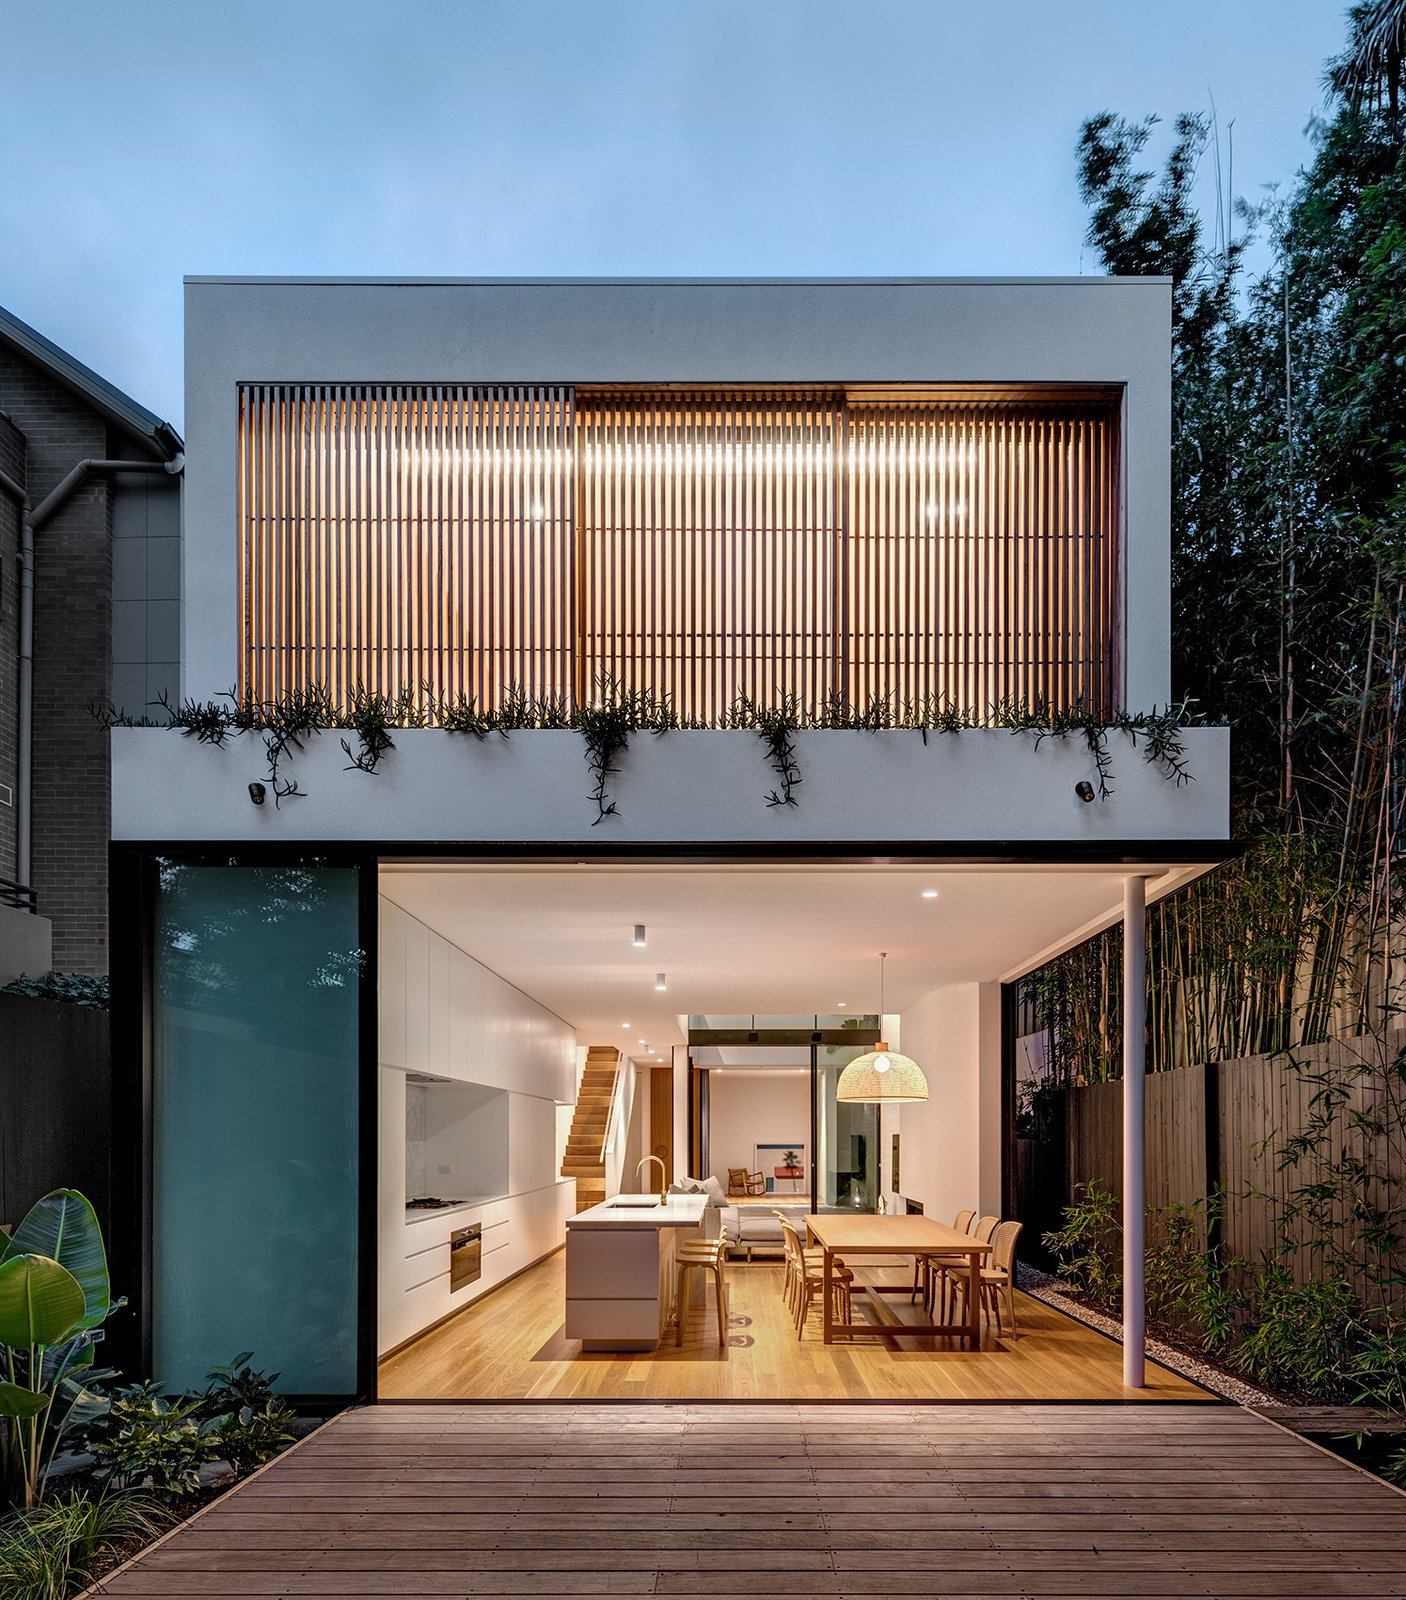 Outdoor, Back Yard, Wood Patio, Porch, Deck, Wood Fences, Wall, and Shrubs Designed by Sydney-based practice Akin Atelier, this Bondi Beach abode is comprised of two volumes connected by a central courtyard that draws in natural light. The orientation of the 2,010-square-foot home allows for a playful rhythm of light, shadow, and air that gives it its atmospheric name, Cloud House.  Photo 14 of 21 in Dwell's Top 10 Home Tours of 2019 from Cloud House